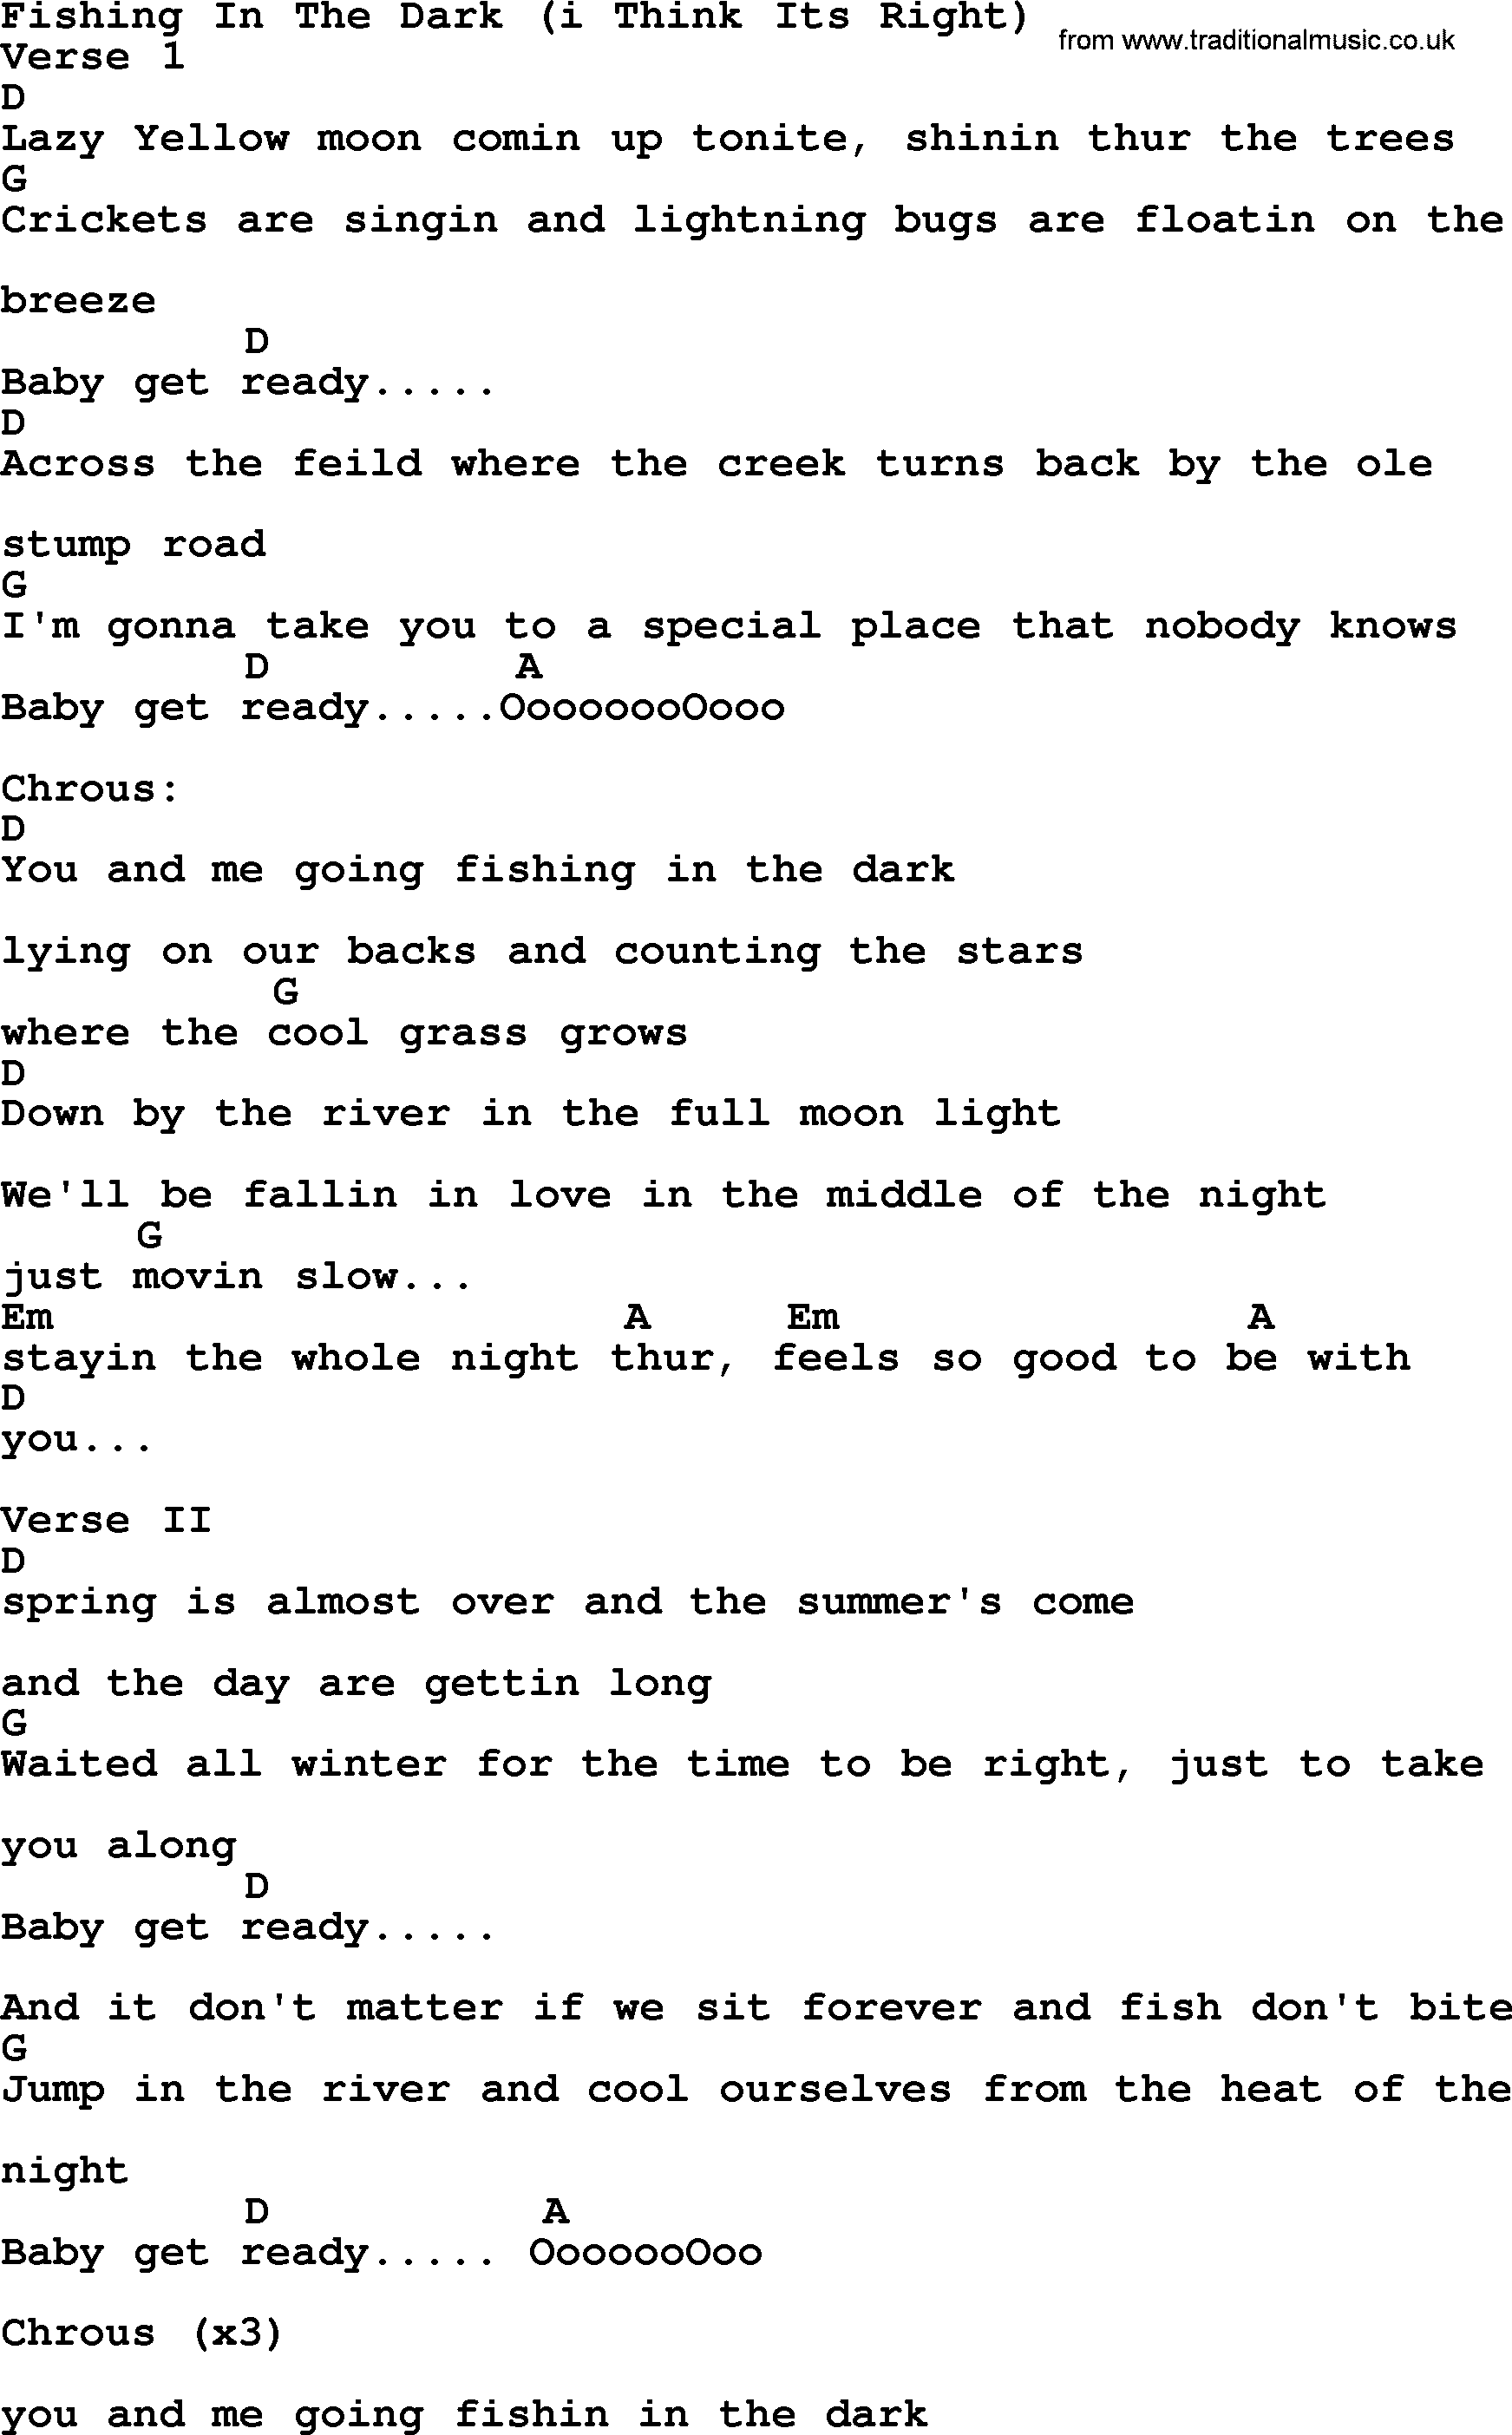 Fishing In The Dark I Think Its Right   Bluegrass lyrics with chords